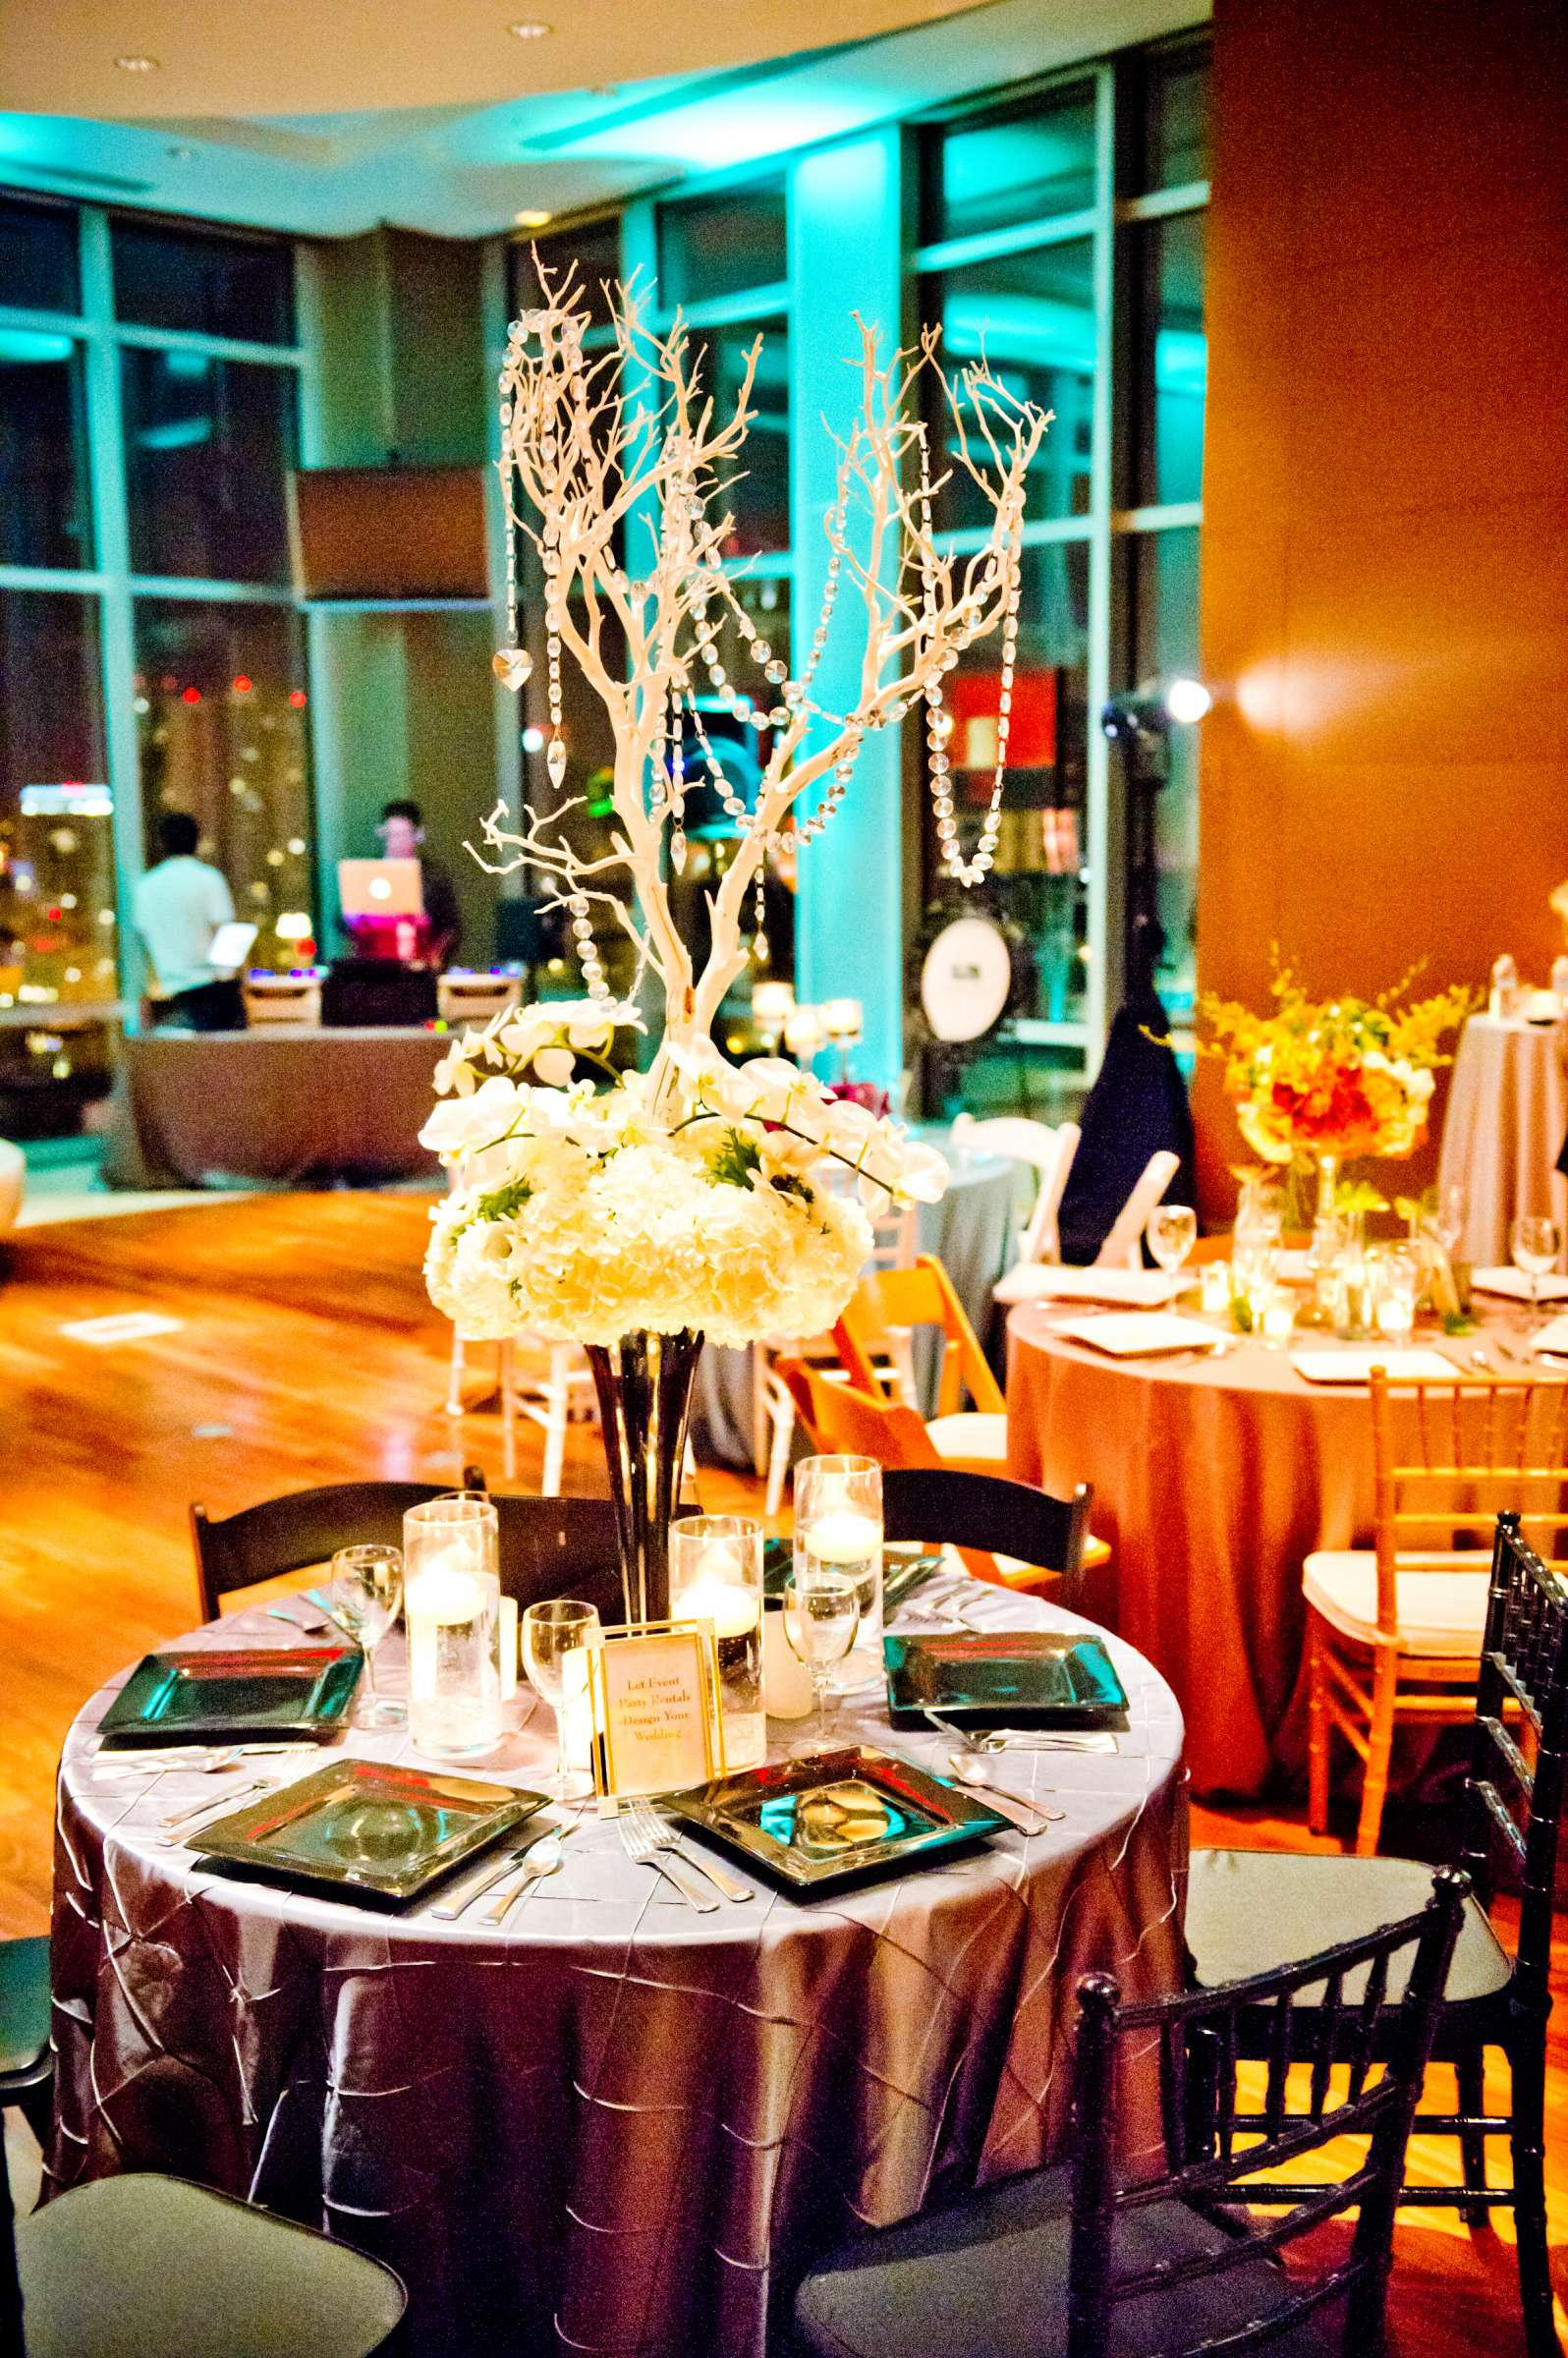 Ultimate Skybox Wedding coordinated by Creative Affairs Inc, Open House Wedding Photo #43 by True Photography